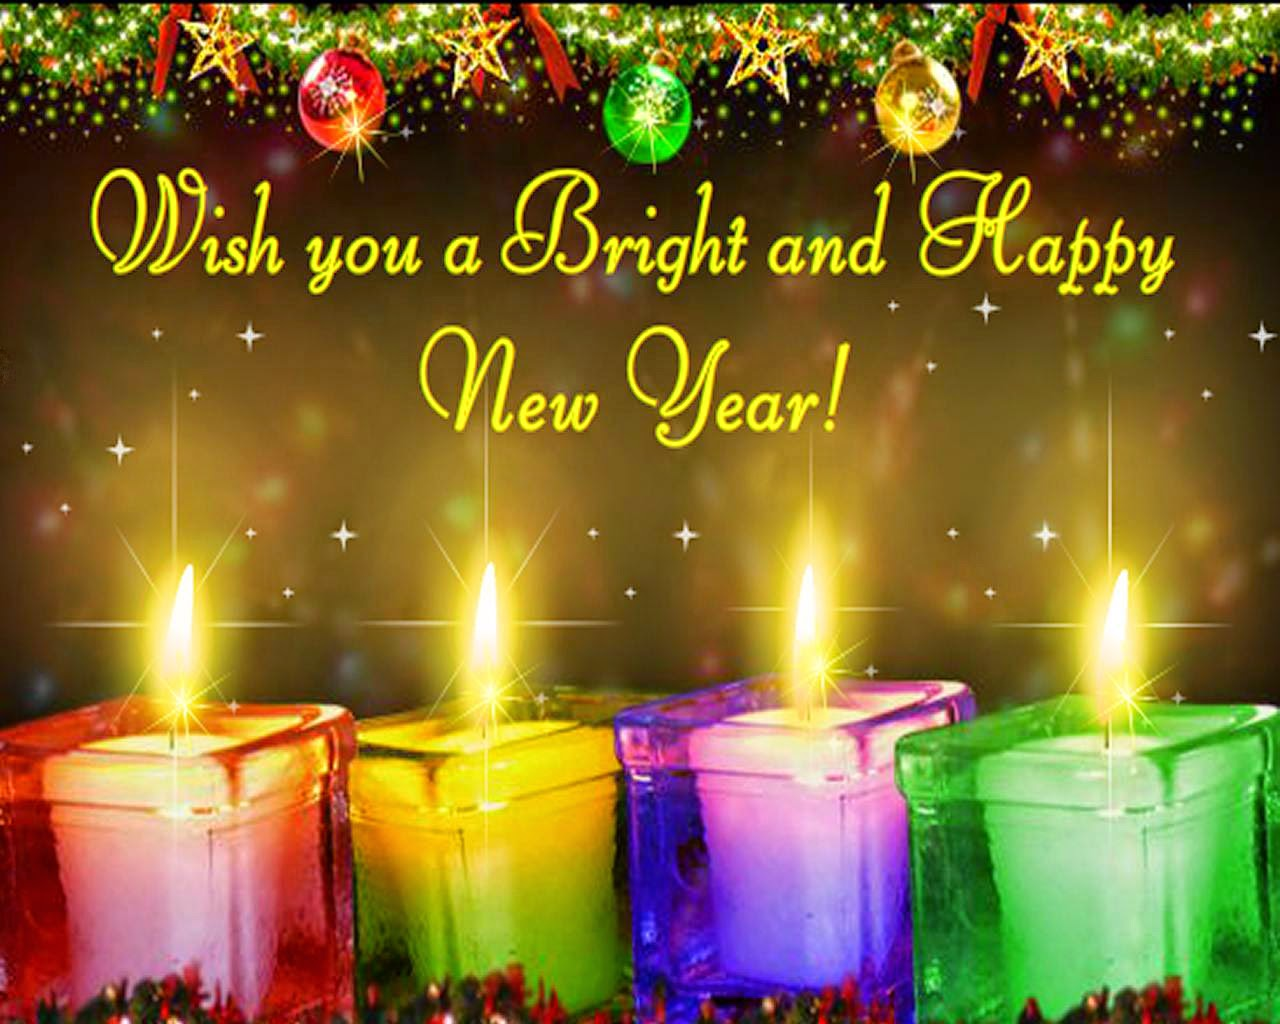 happy new year 2018 wishes picture for friend